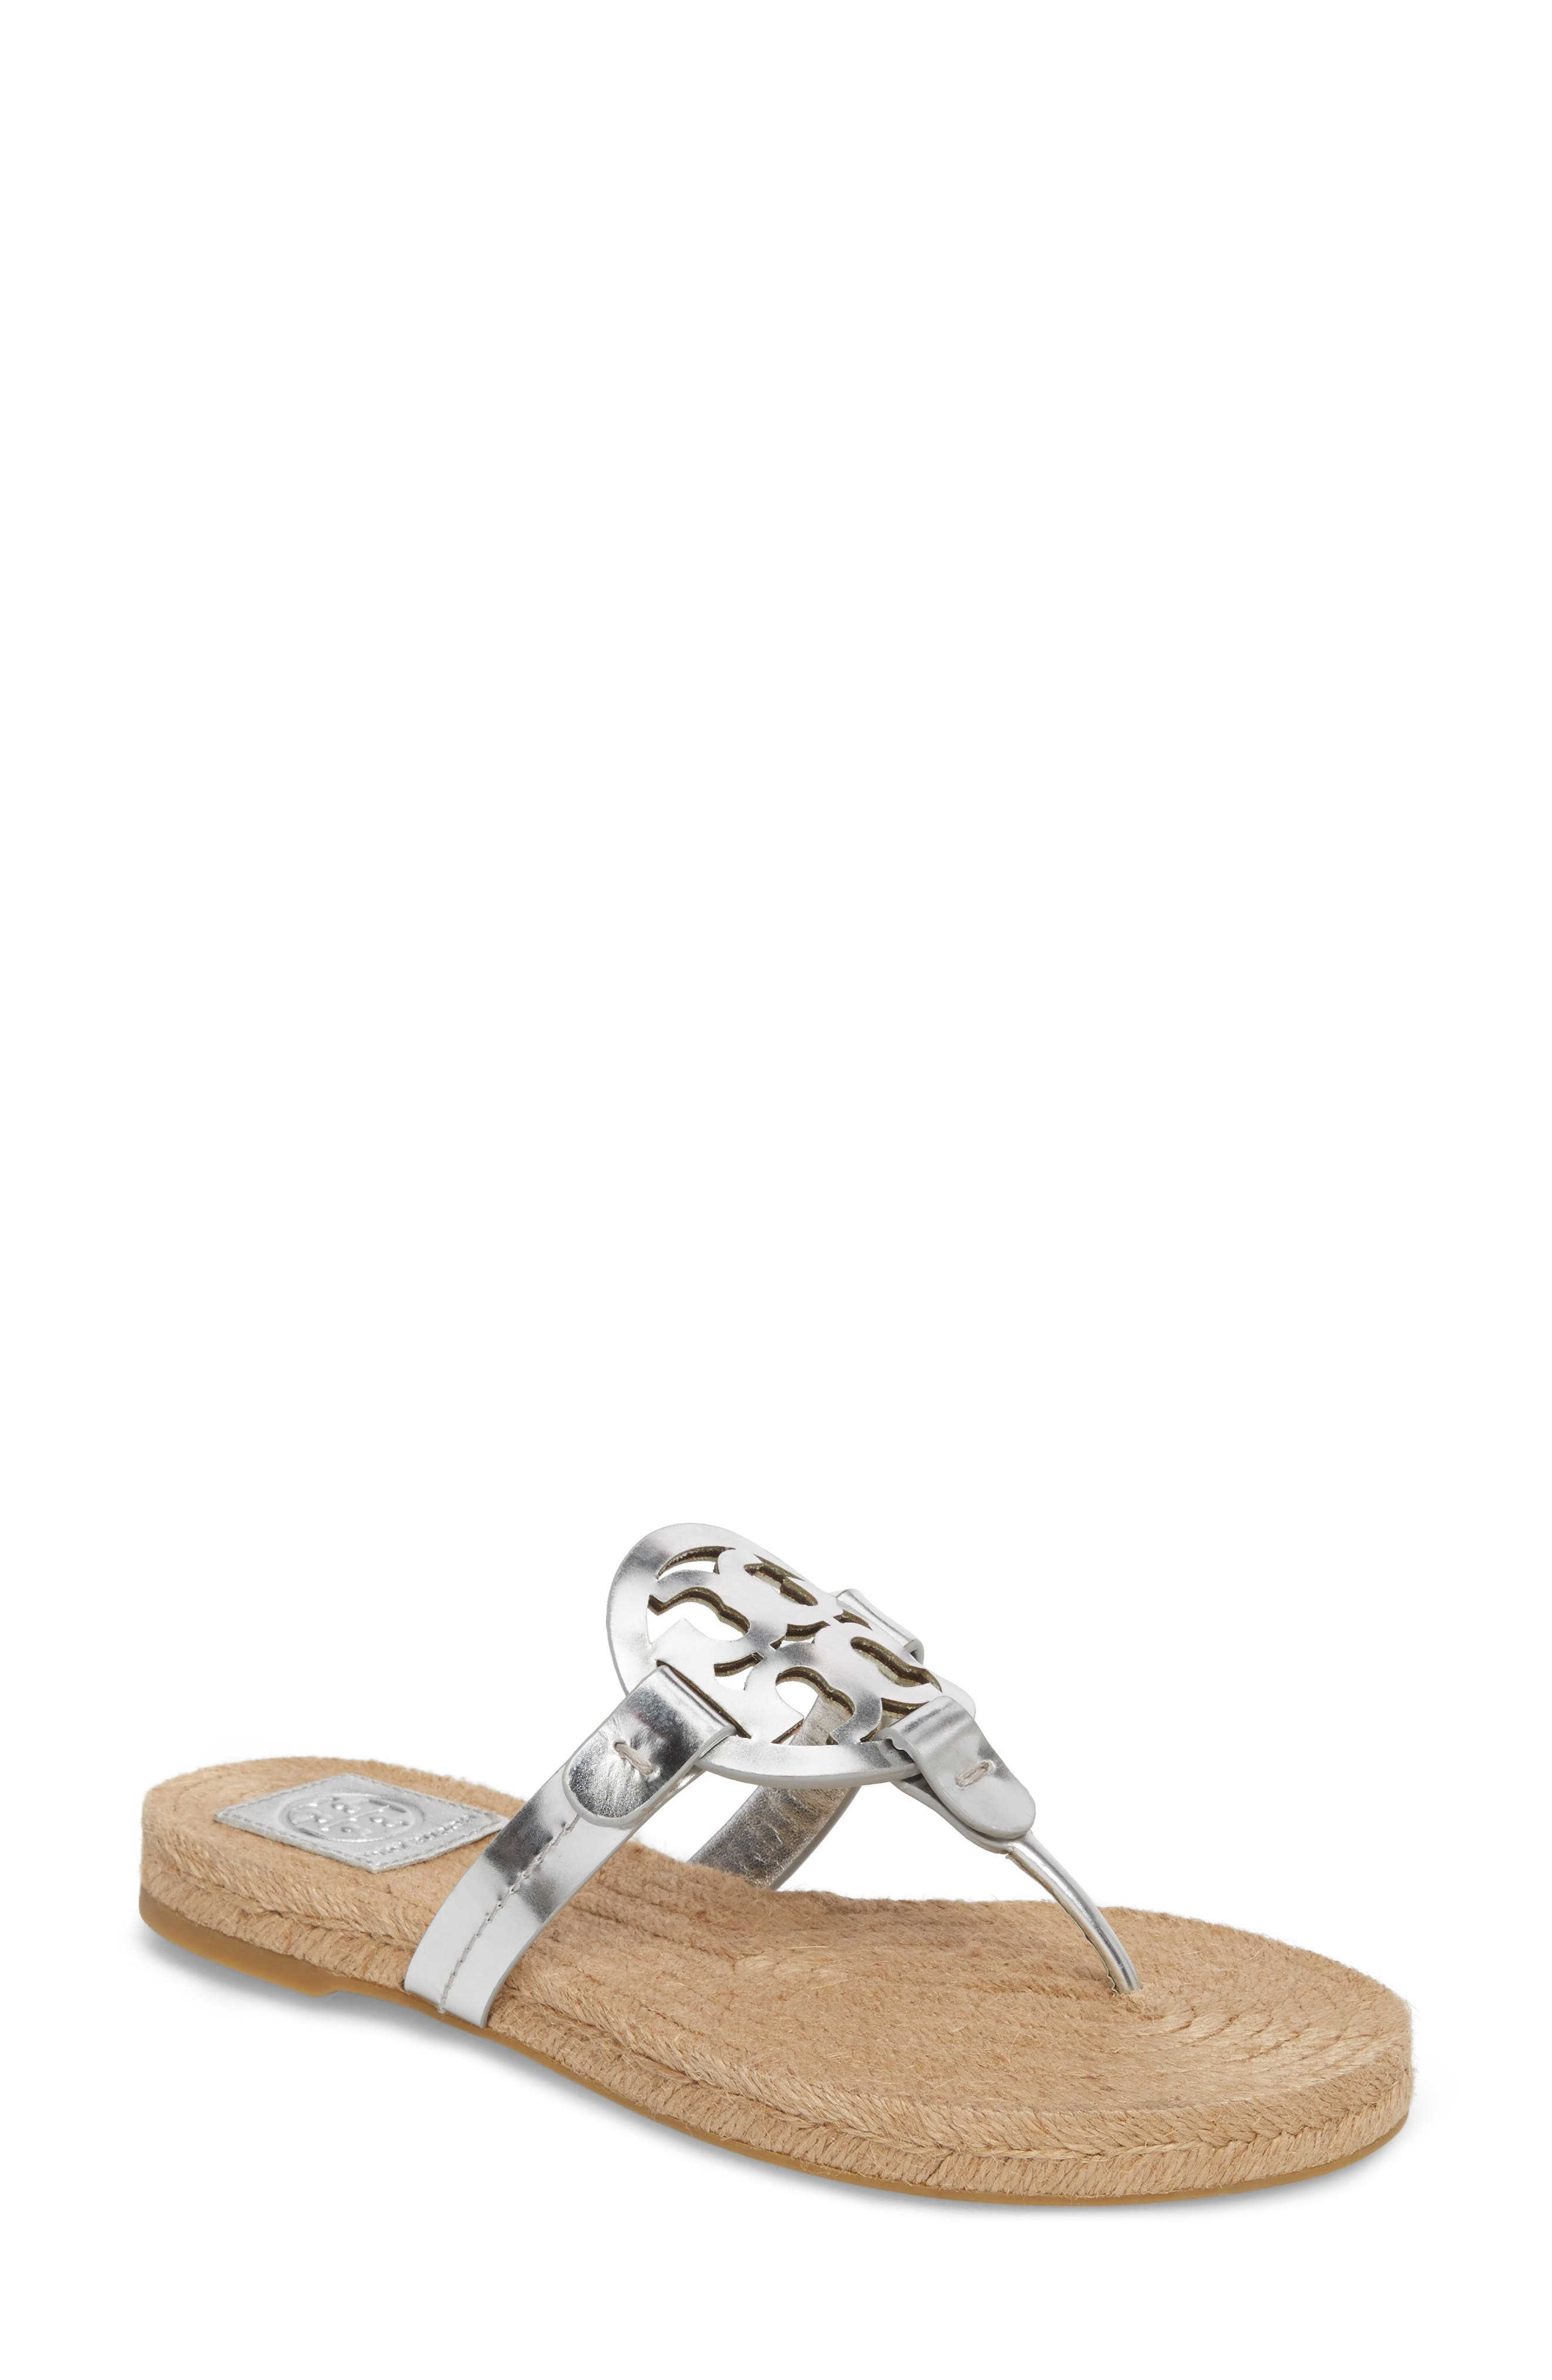 Alternate Image 1 Selected - Tory Burch Miller Espadrille Sandal (Women)